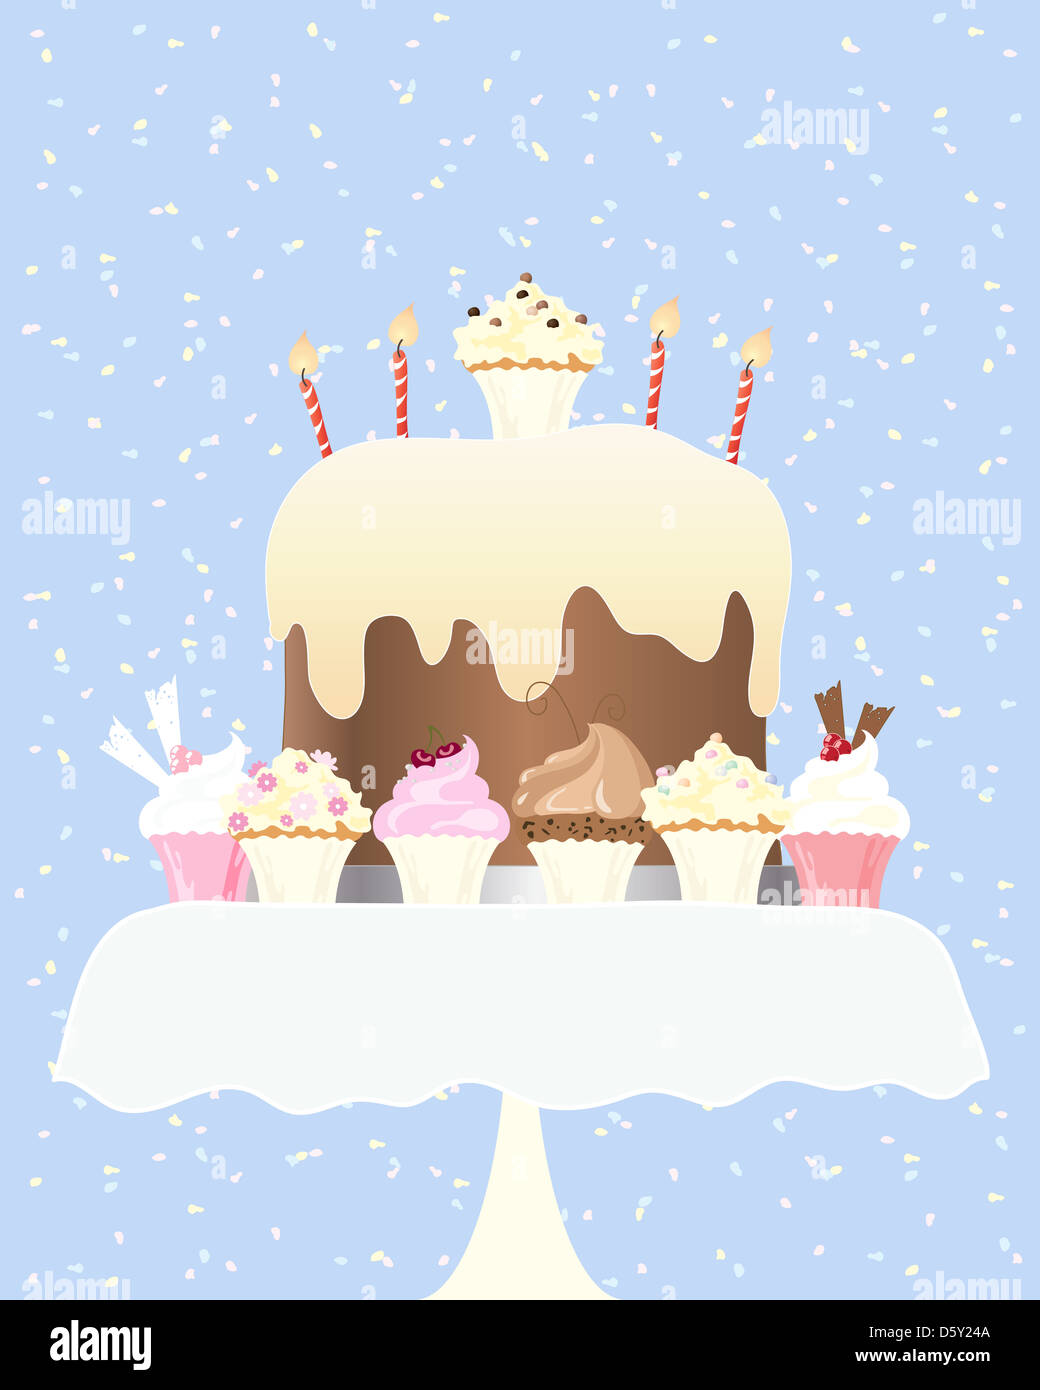 an illustration of a big birthday cake with candles and